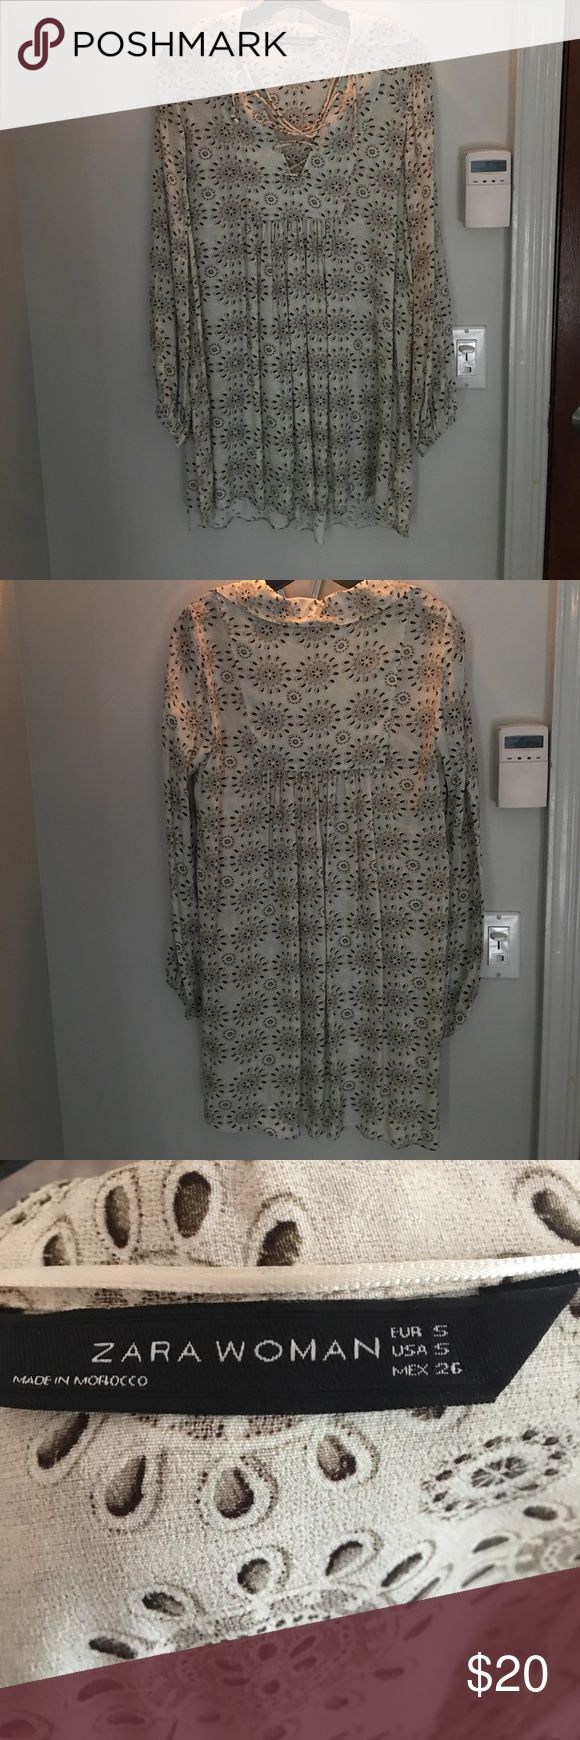 Zara Pattern Dress Zara Patterned Dress. NEVER WORN. PERFECT CONDITION. Perfect for summer. Pair it with some gladiator sandals. Zara Dresses Long Sleeve